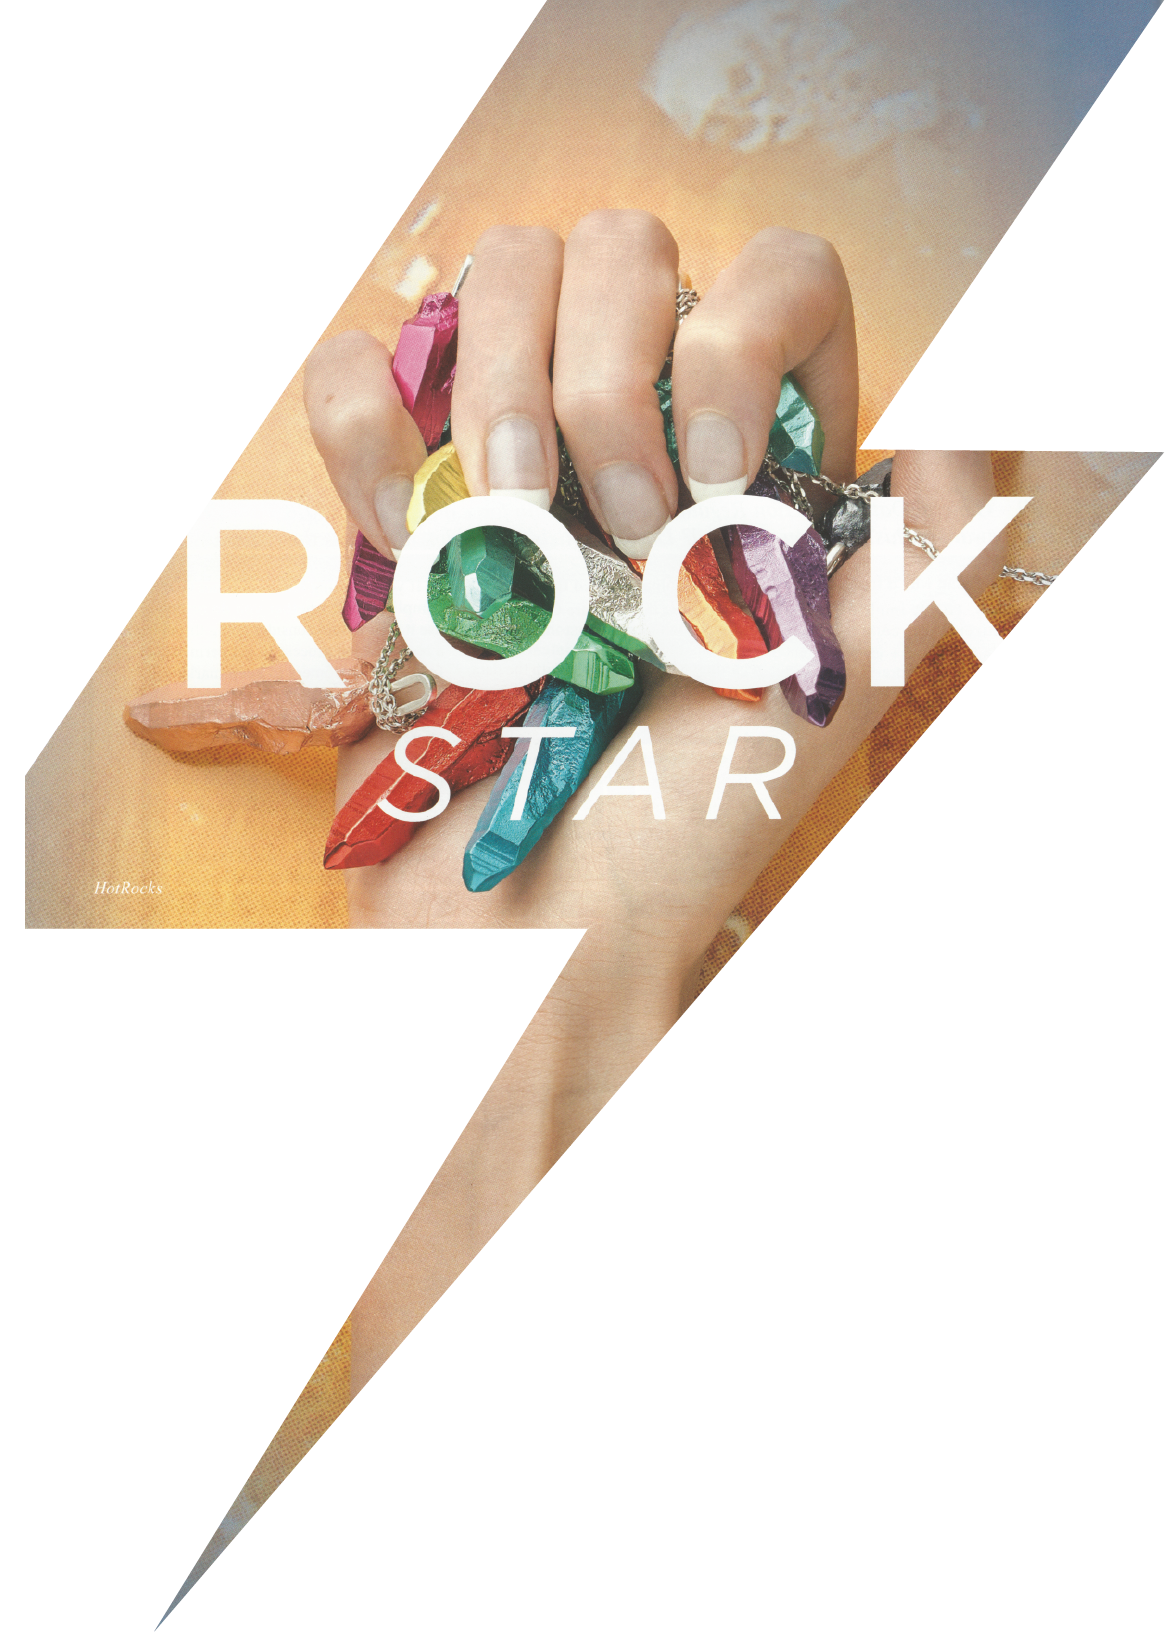 It's been a busy year here at The Rock Hound so when Belinda Morris of The Jeweller got in touch it was a great chance to review how far we've come, what's the driving passion behind the brand and what the future holds. -